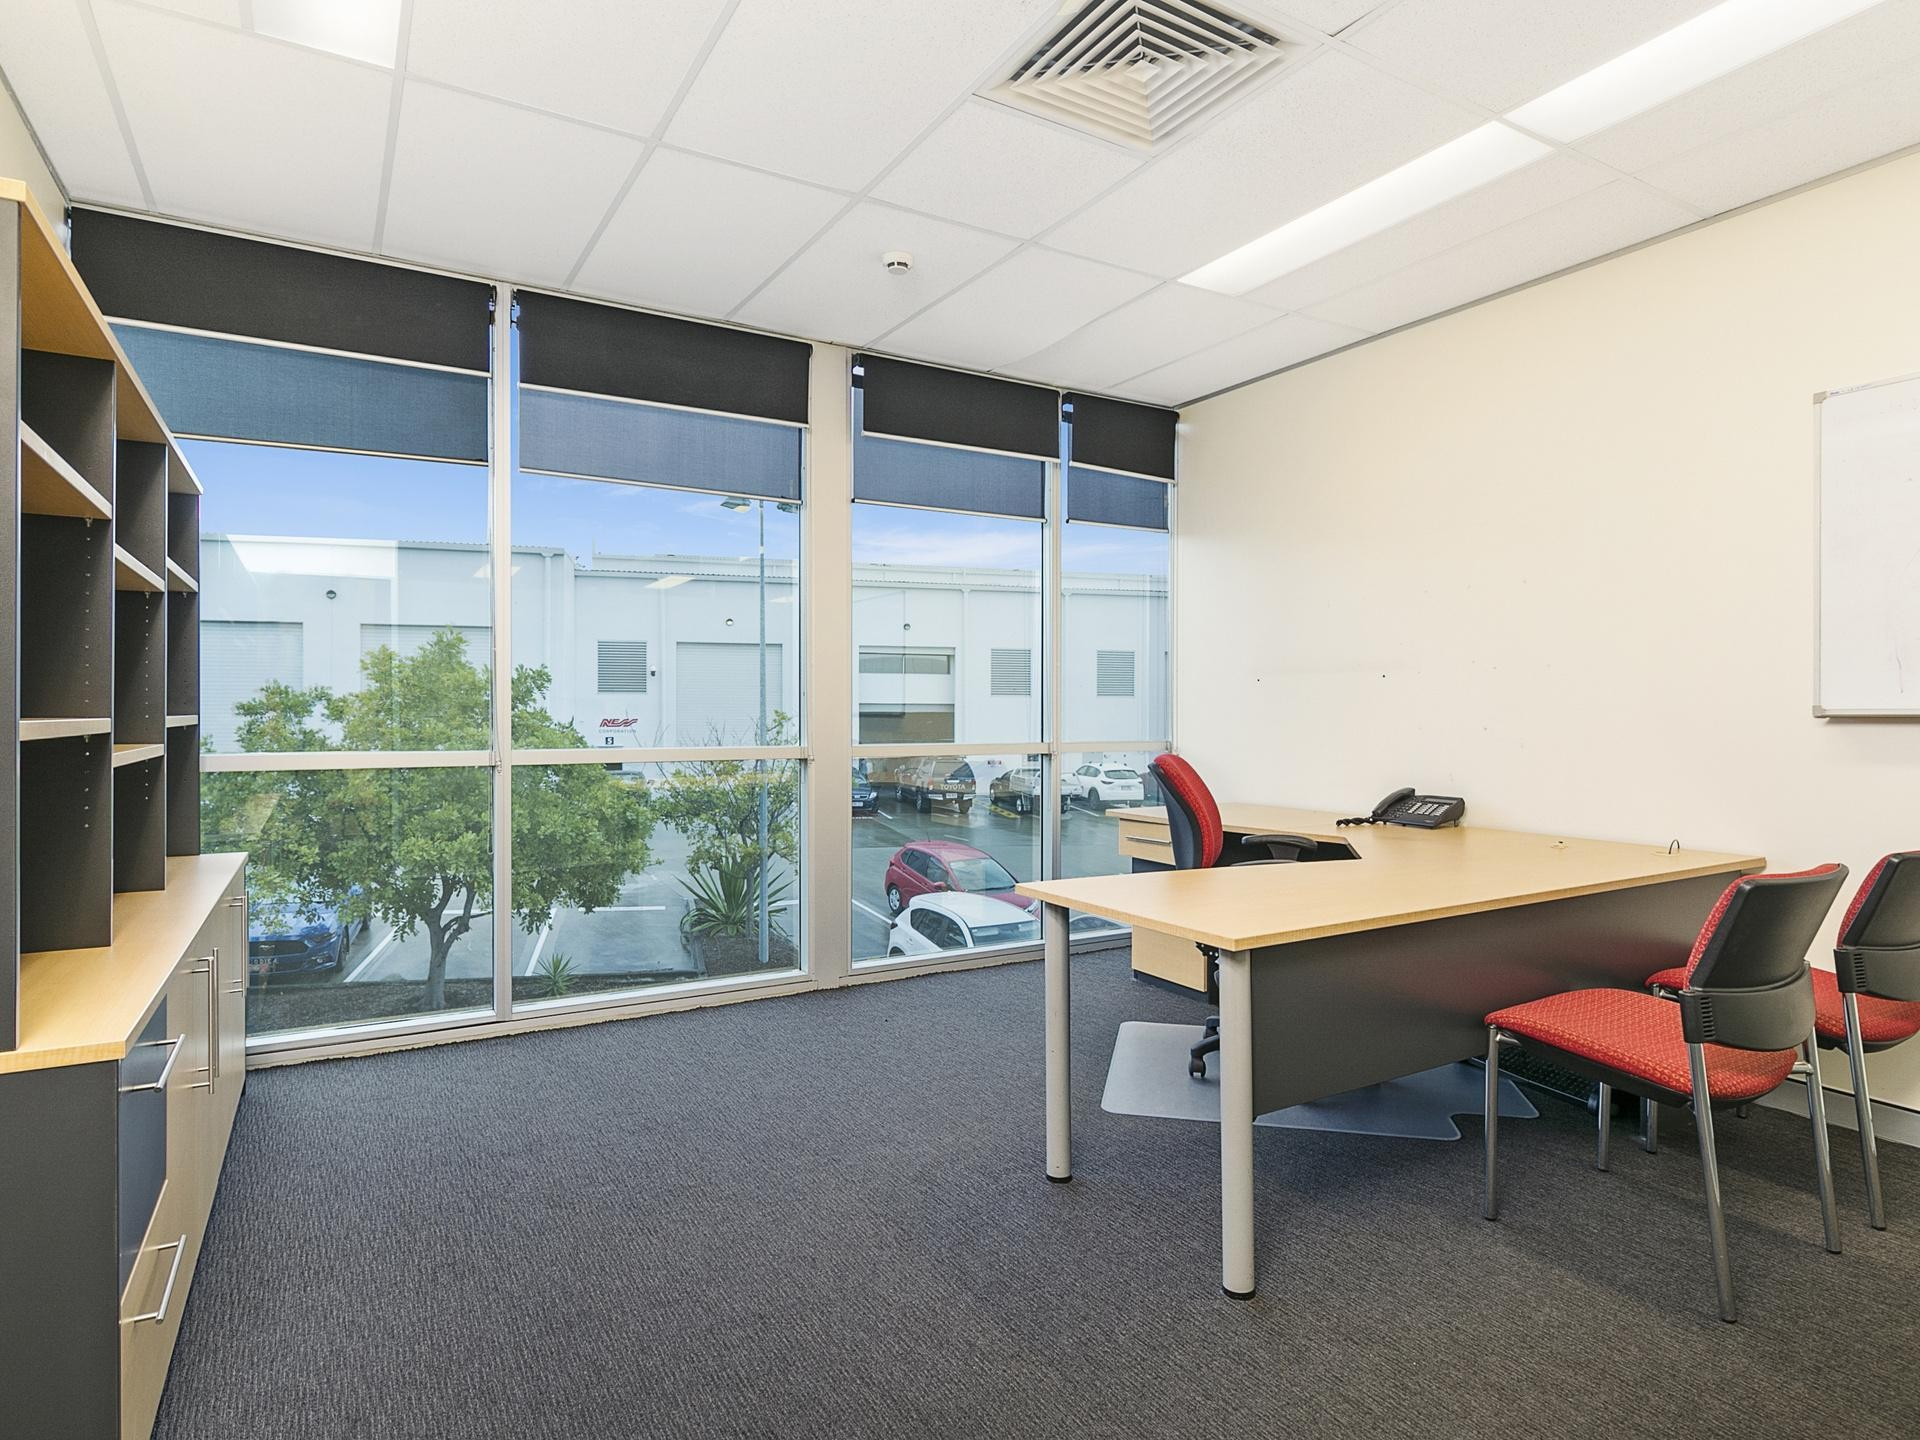 Premium A Grade Office Spaces At Discounted Rates!